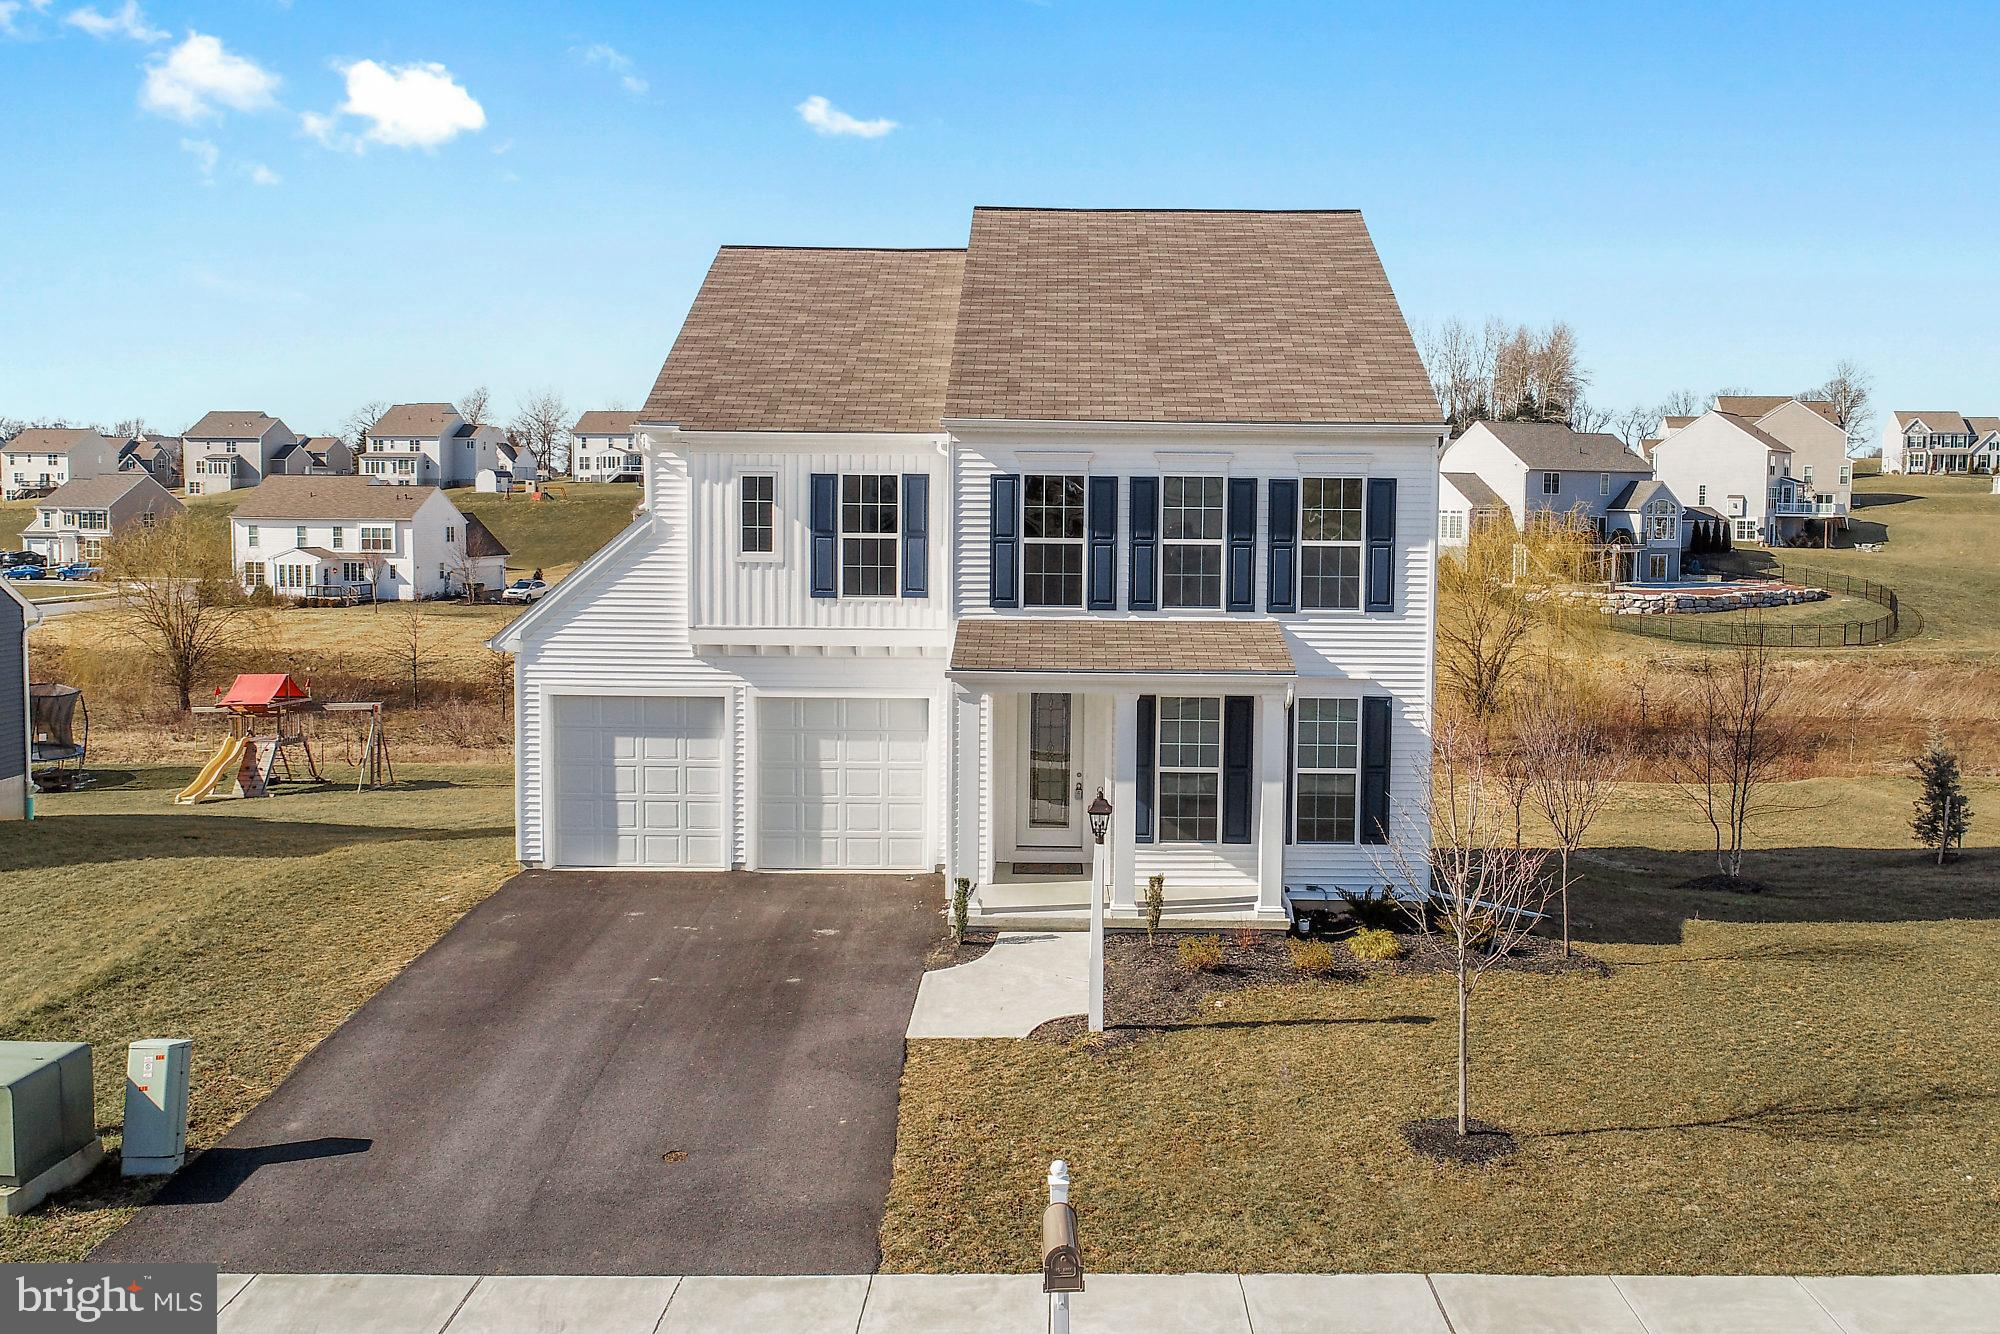 844 SAGE HILL DRIVE, RED LION, PA 17356